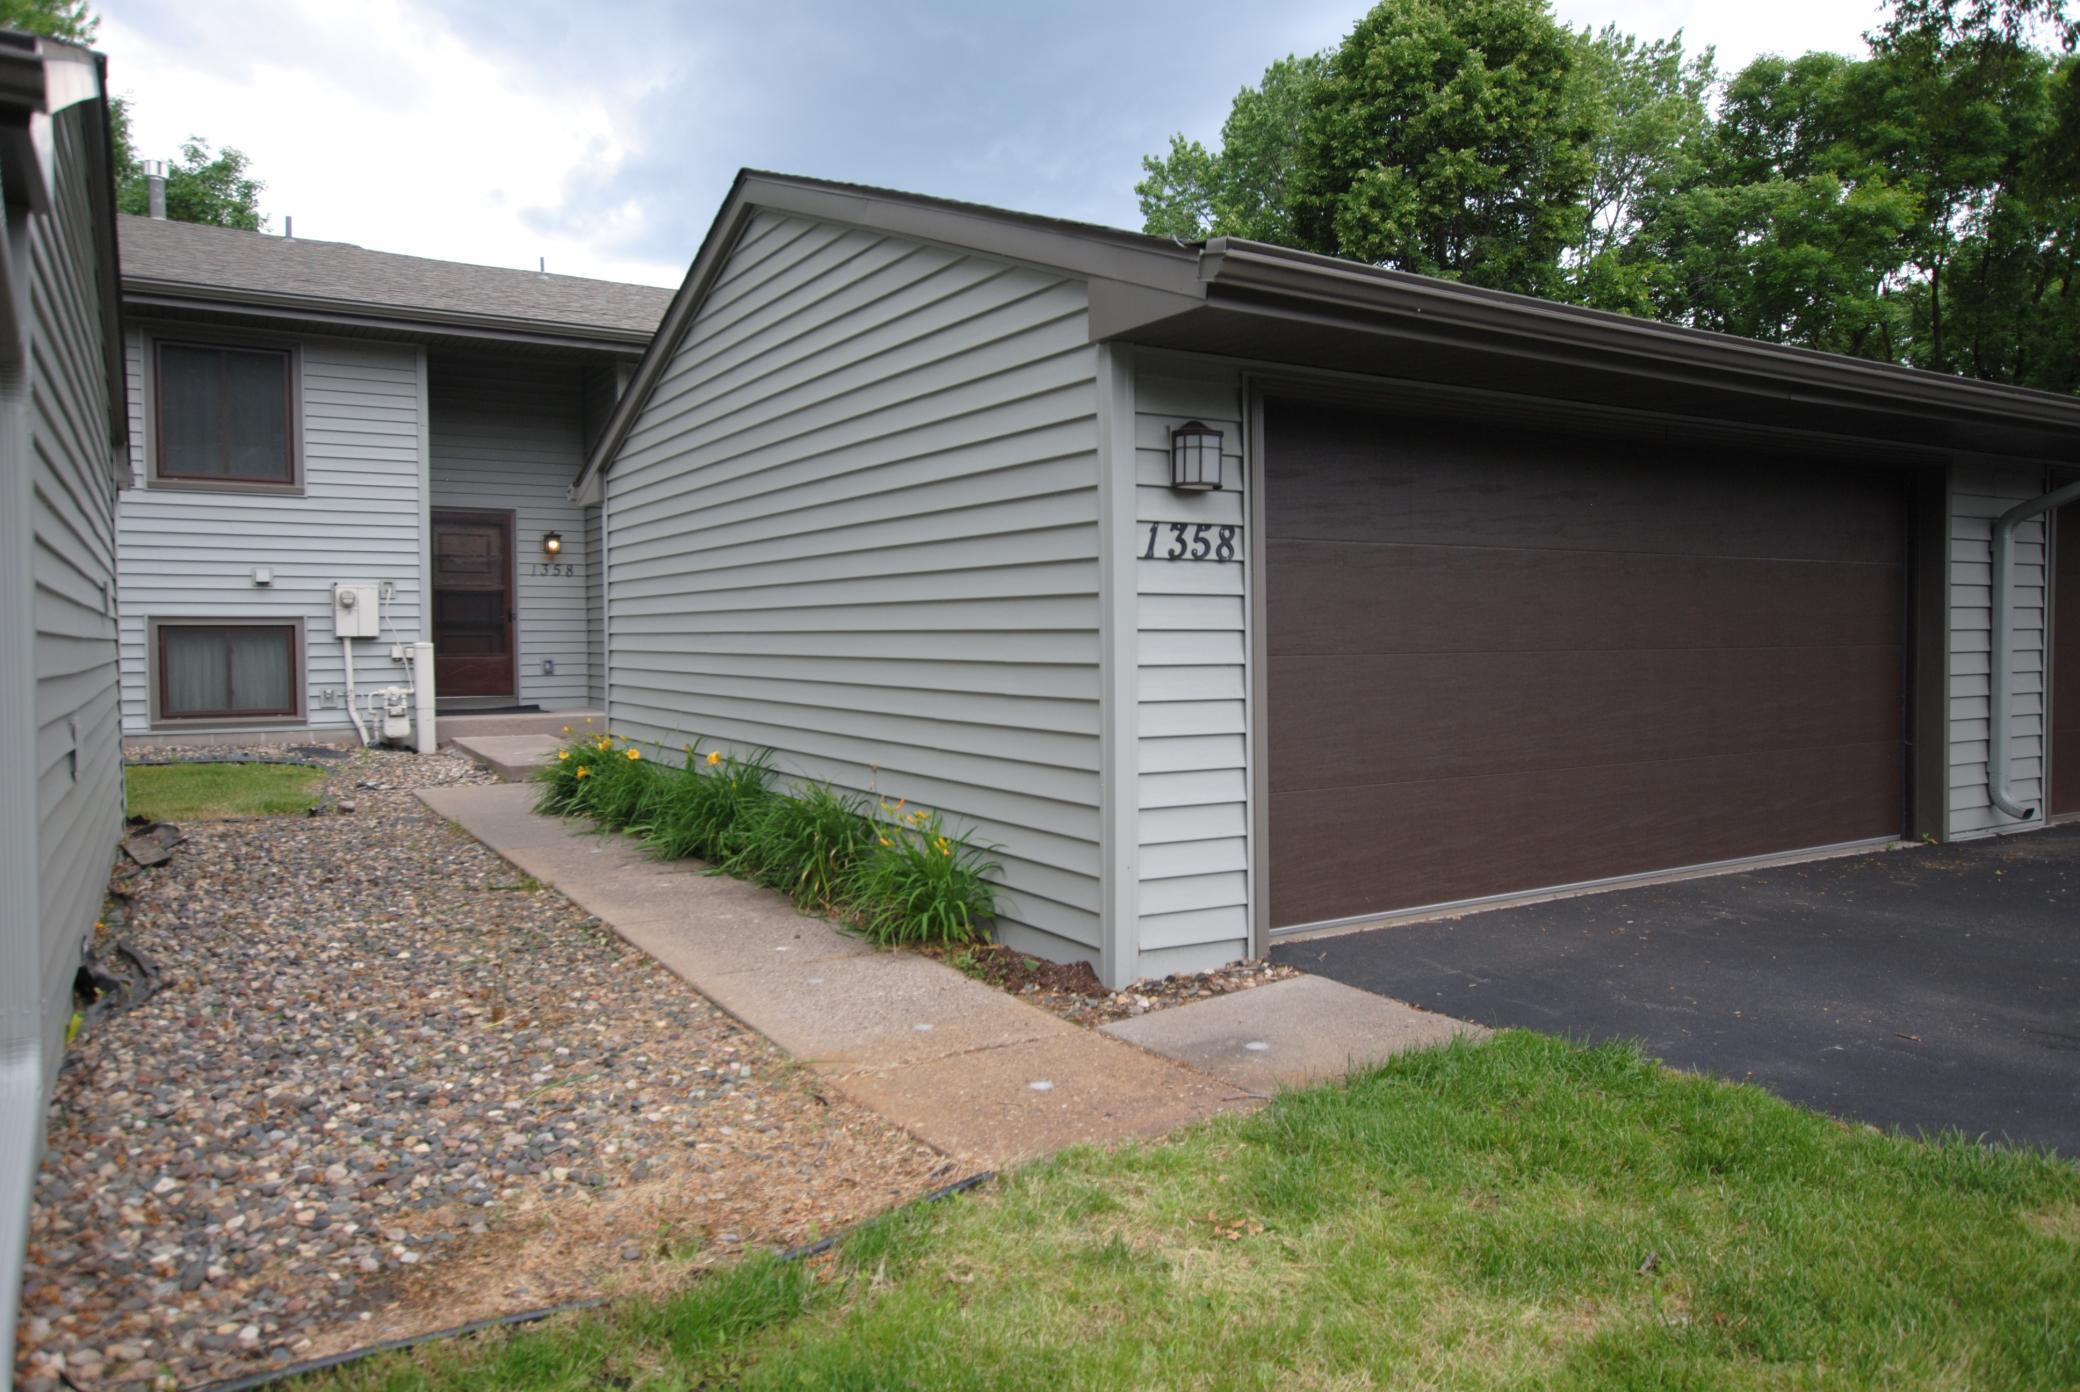 1358 Arden View Drive Property Photo - Arden Hills, MN real estate listing